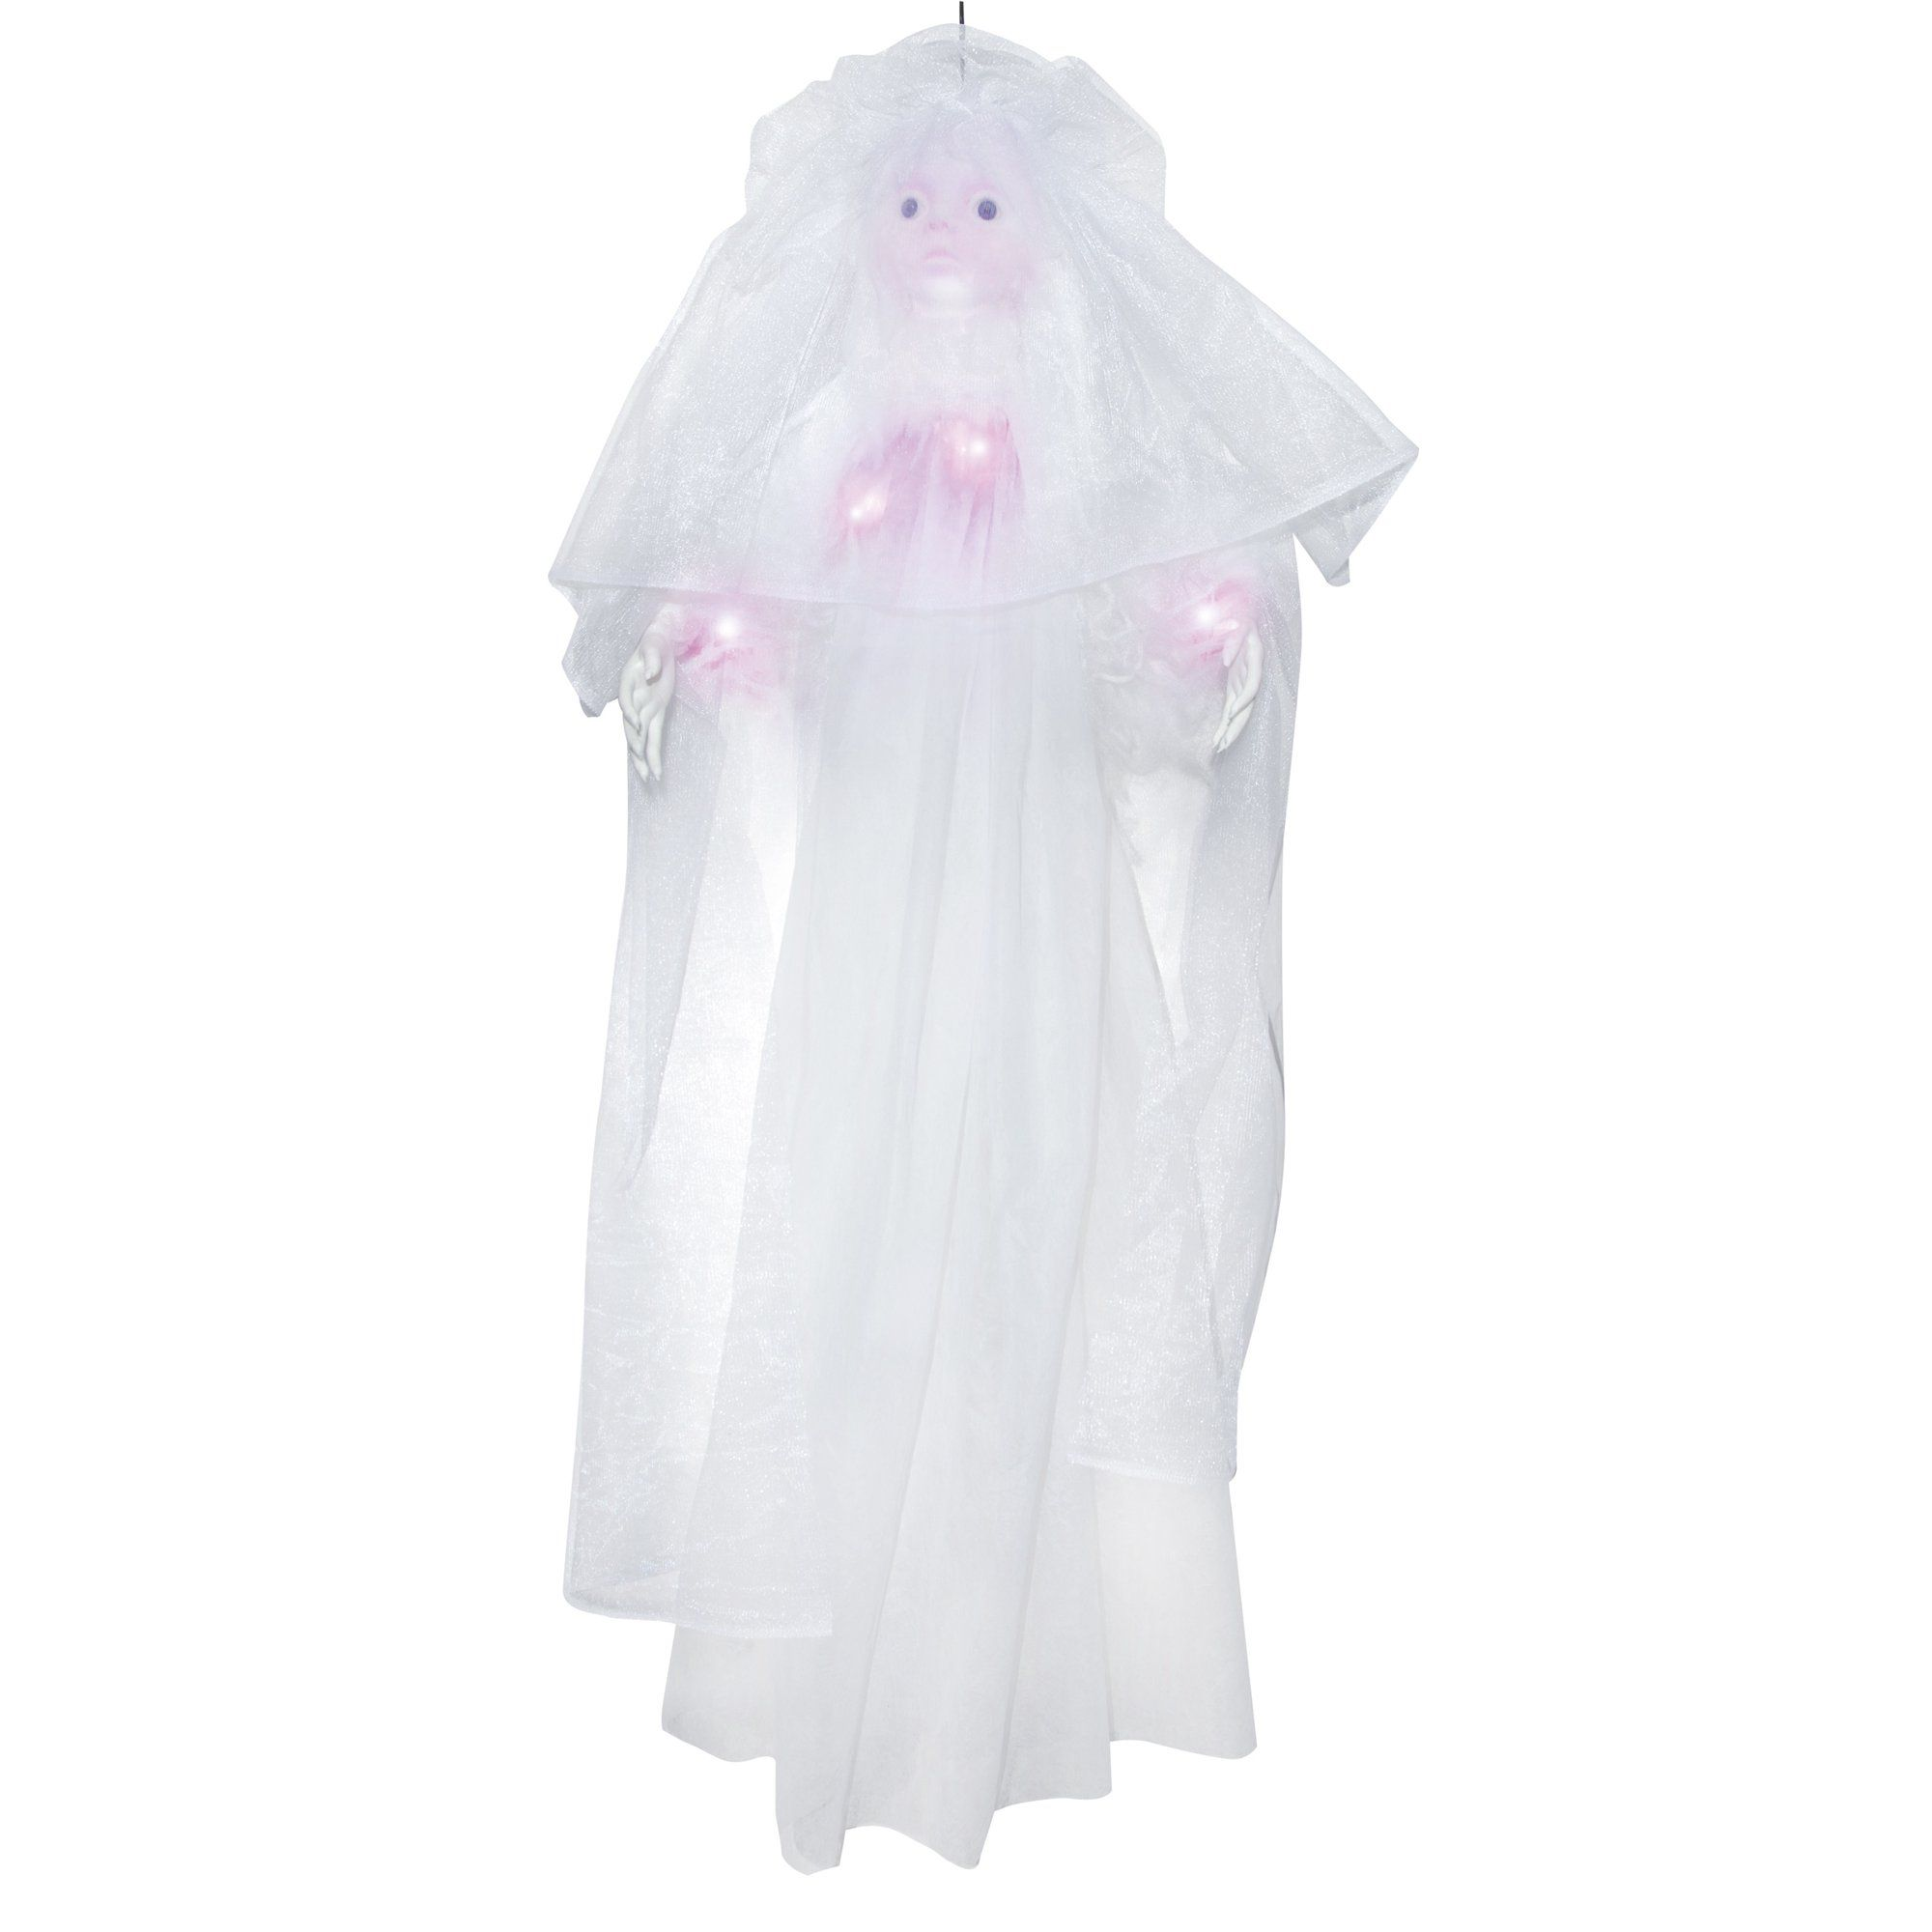 Battery Operated Light Up Hanging Bride Ghost White Dress Halloween Prop Decor Walmart Com Walmart Com In 2020 Halloween Dress Halloween Props Ghost White